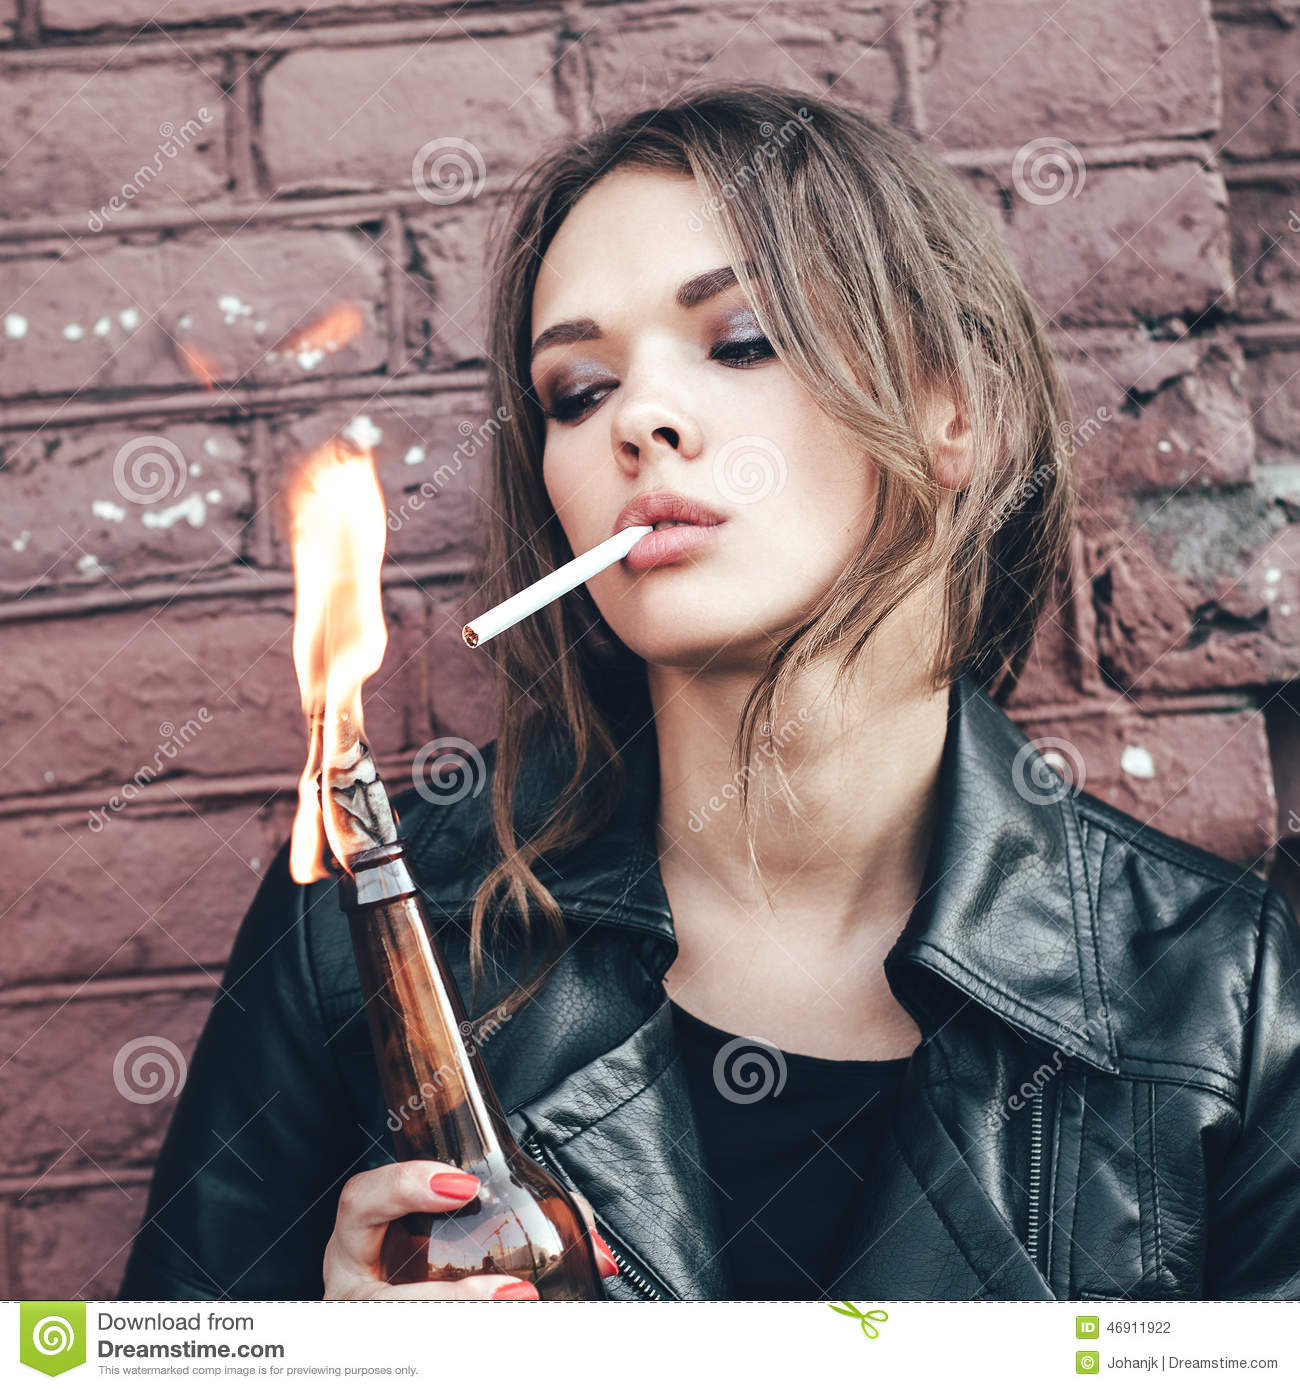 Woman Hooligan Lighting Up A Cigarette From Molotov Cocktail Bomb In Her Hand Stock Photo ...